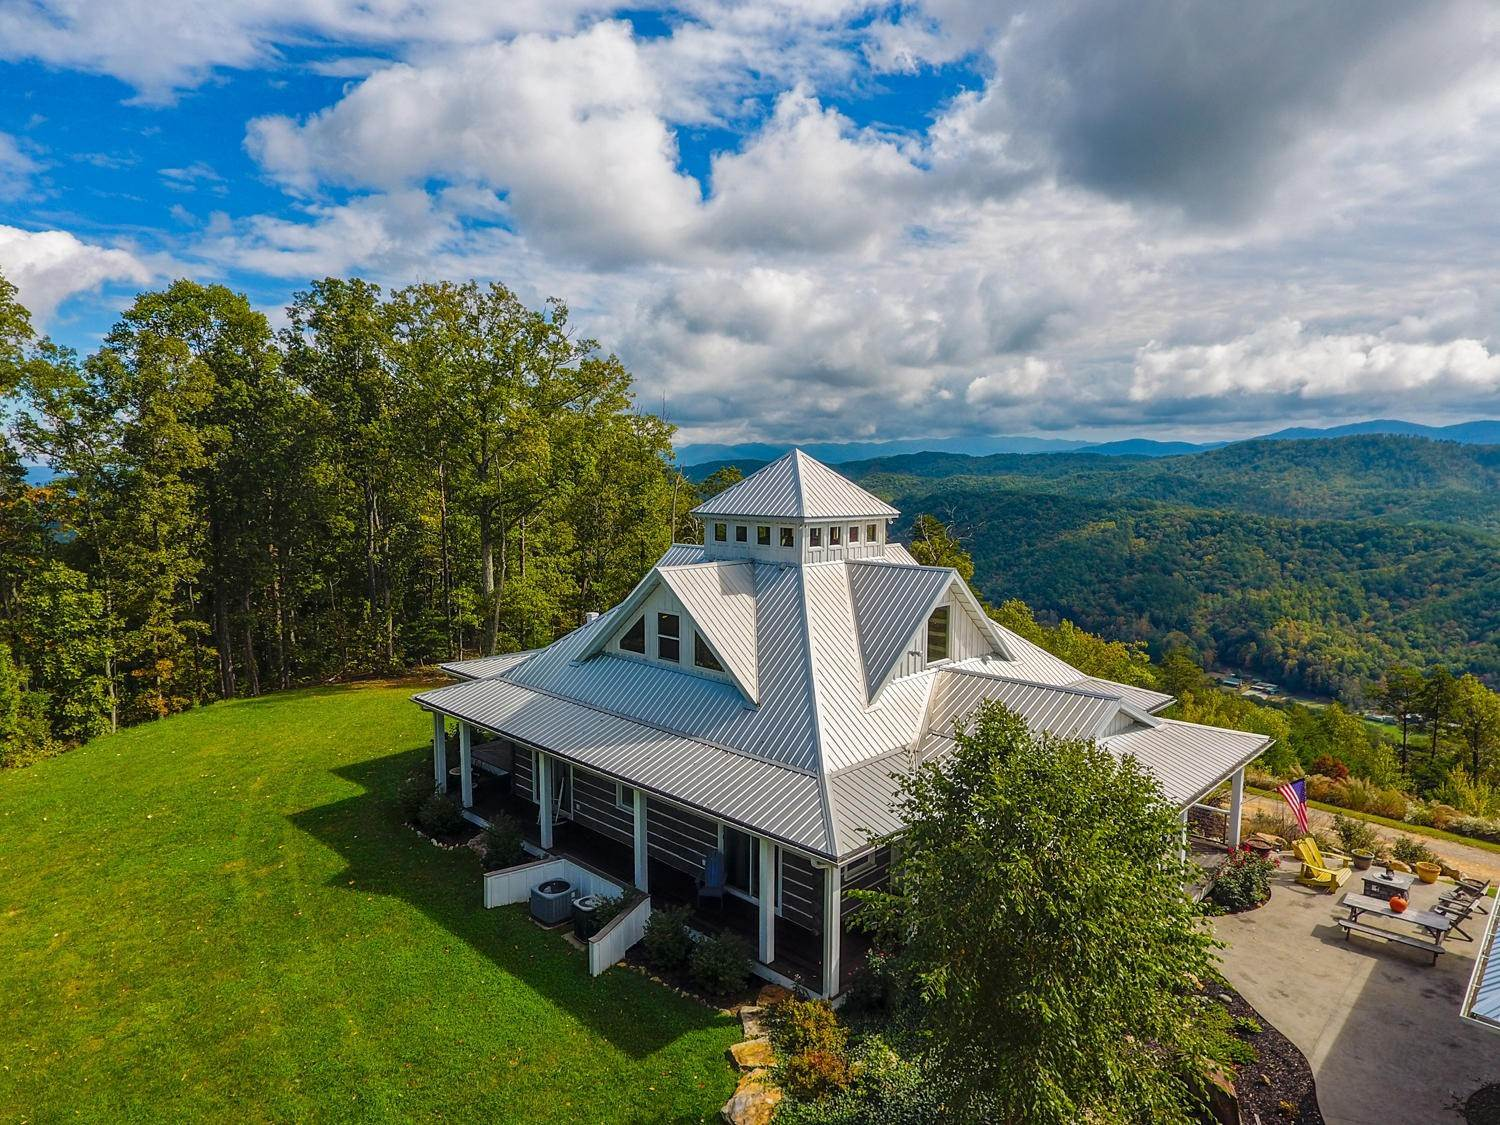 Single Family Homes for Sale at 500 Steer Creek (50 acres) Road Tellico Plains, Tennessee 37385 United States